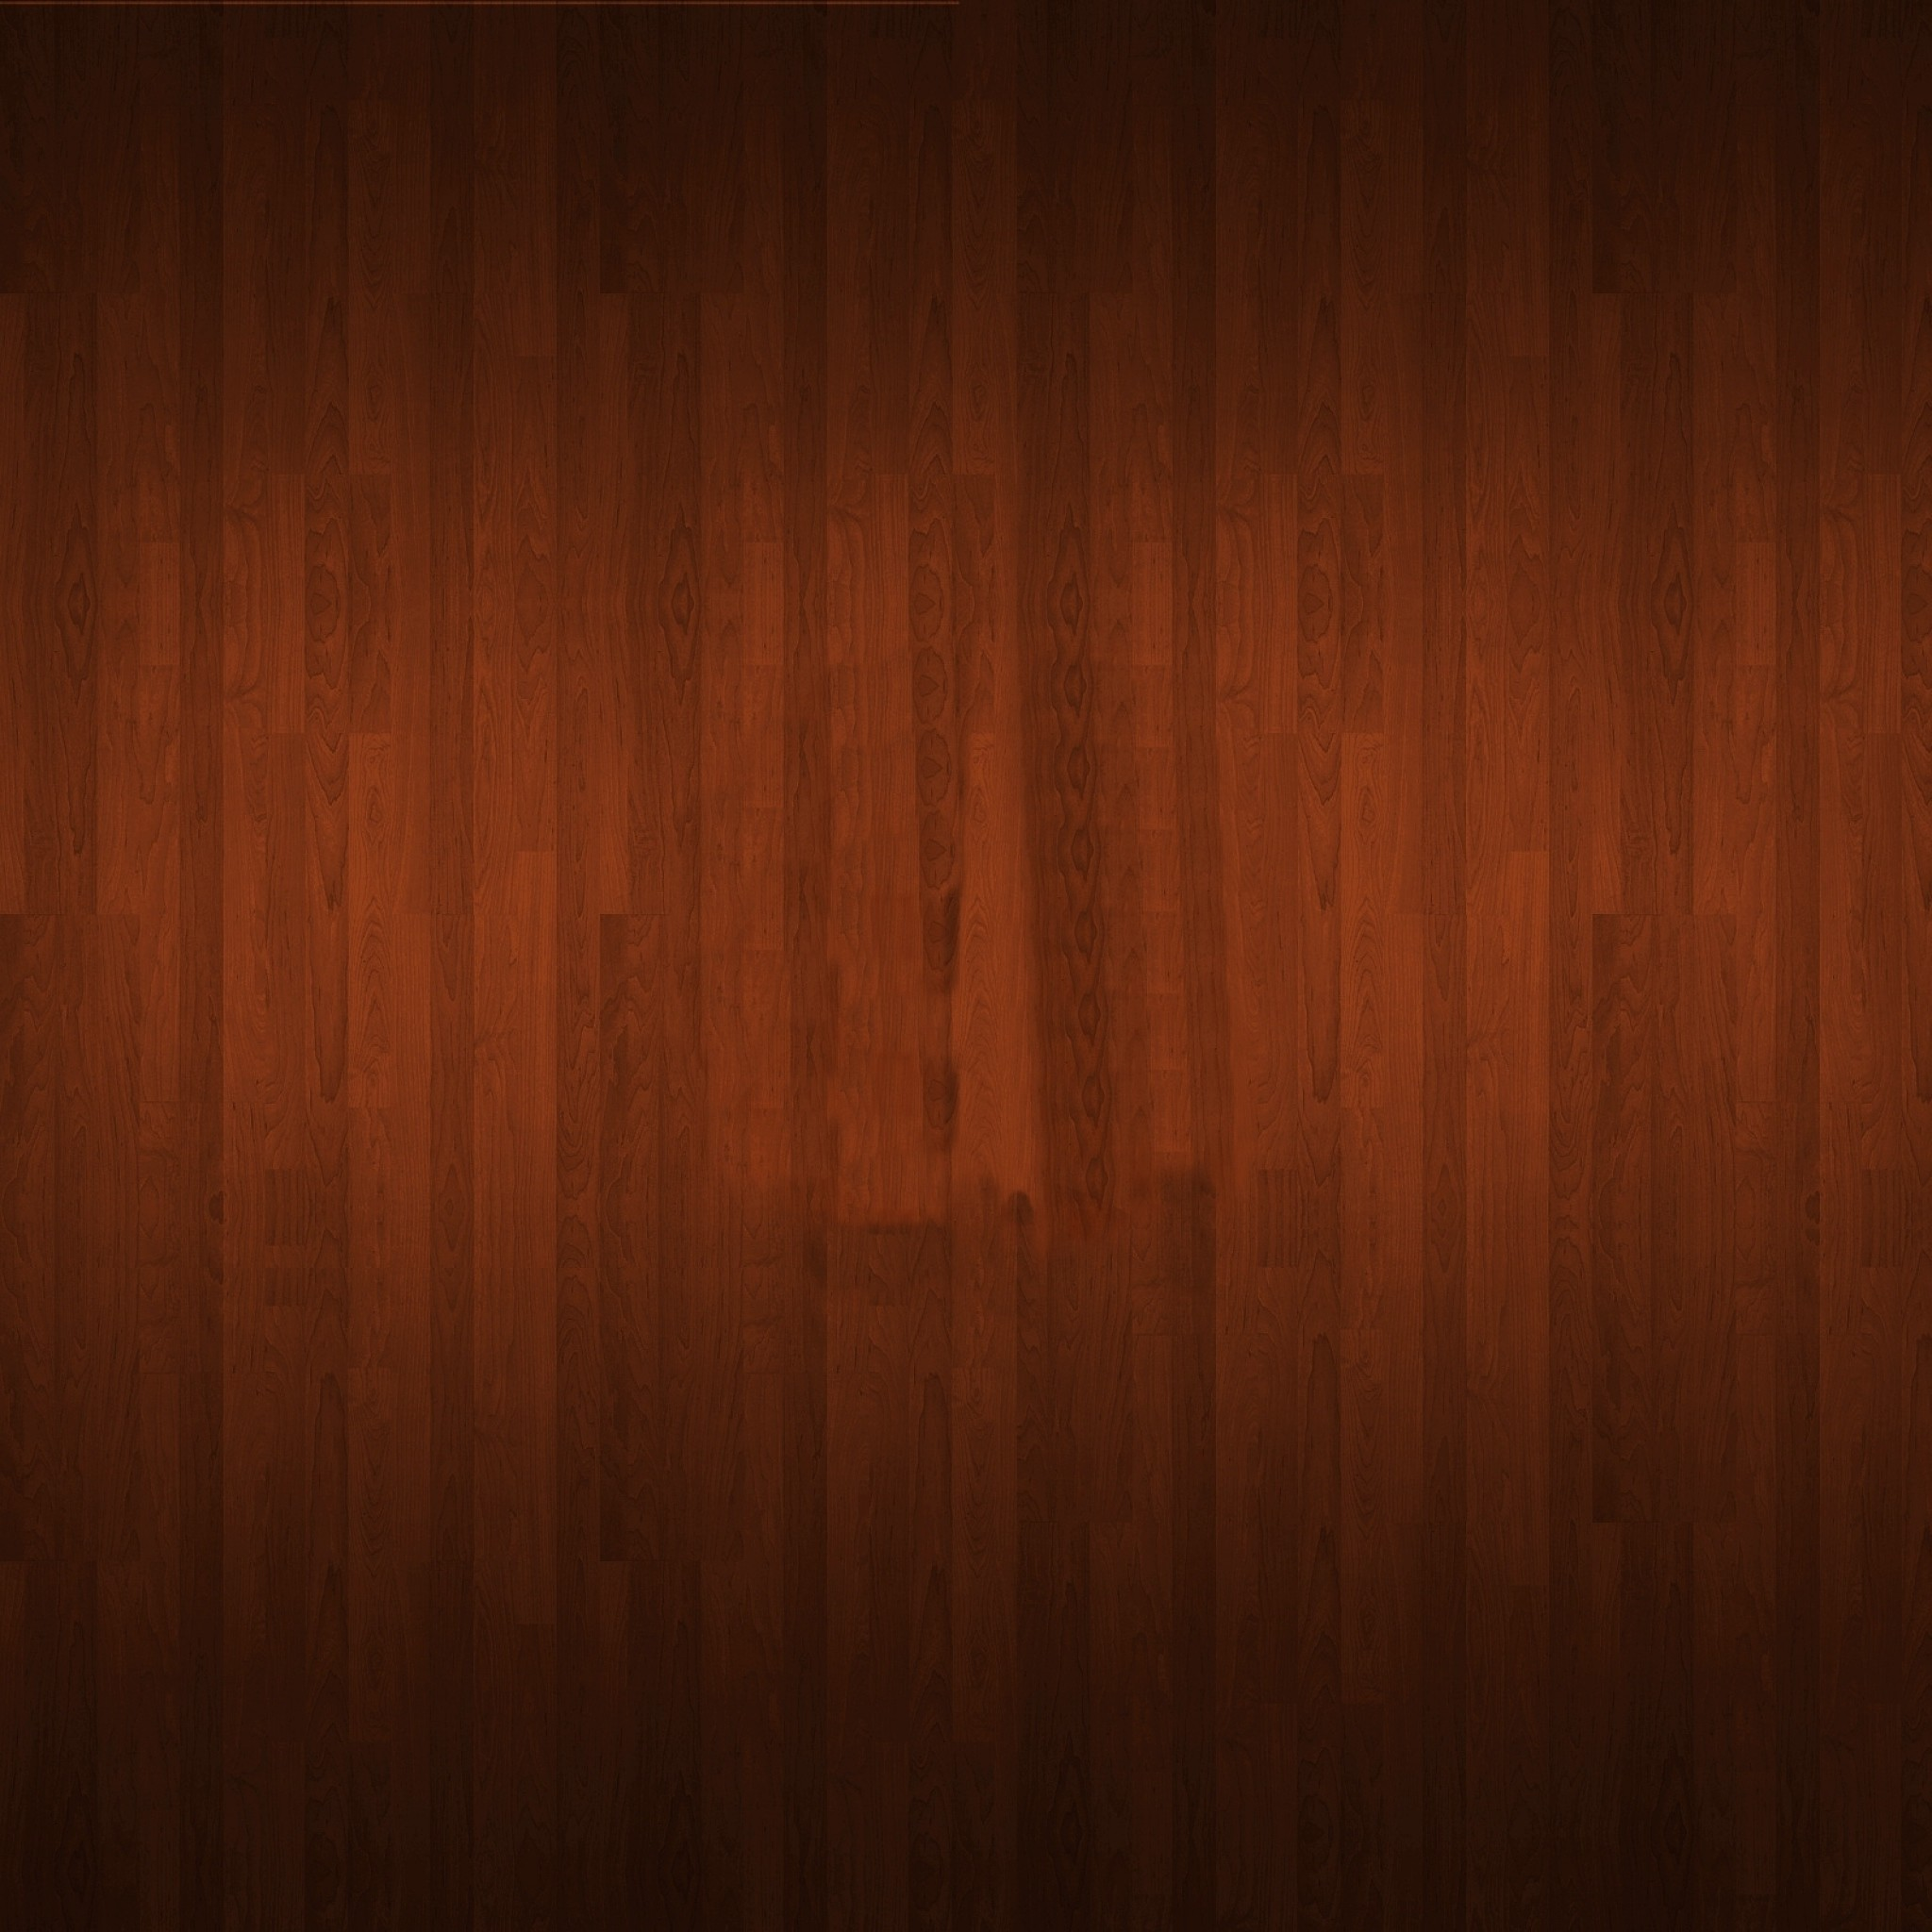 Wooden Desktop Dark Wood Desktop Wallpaper 56 43 Images